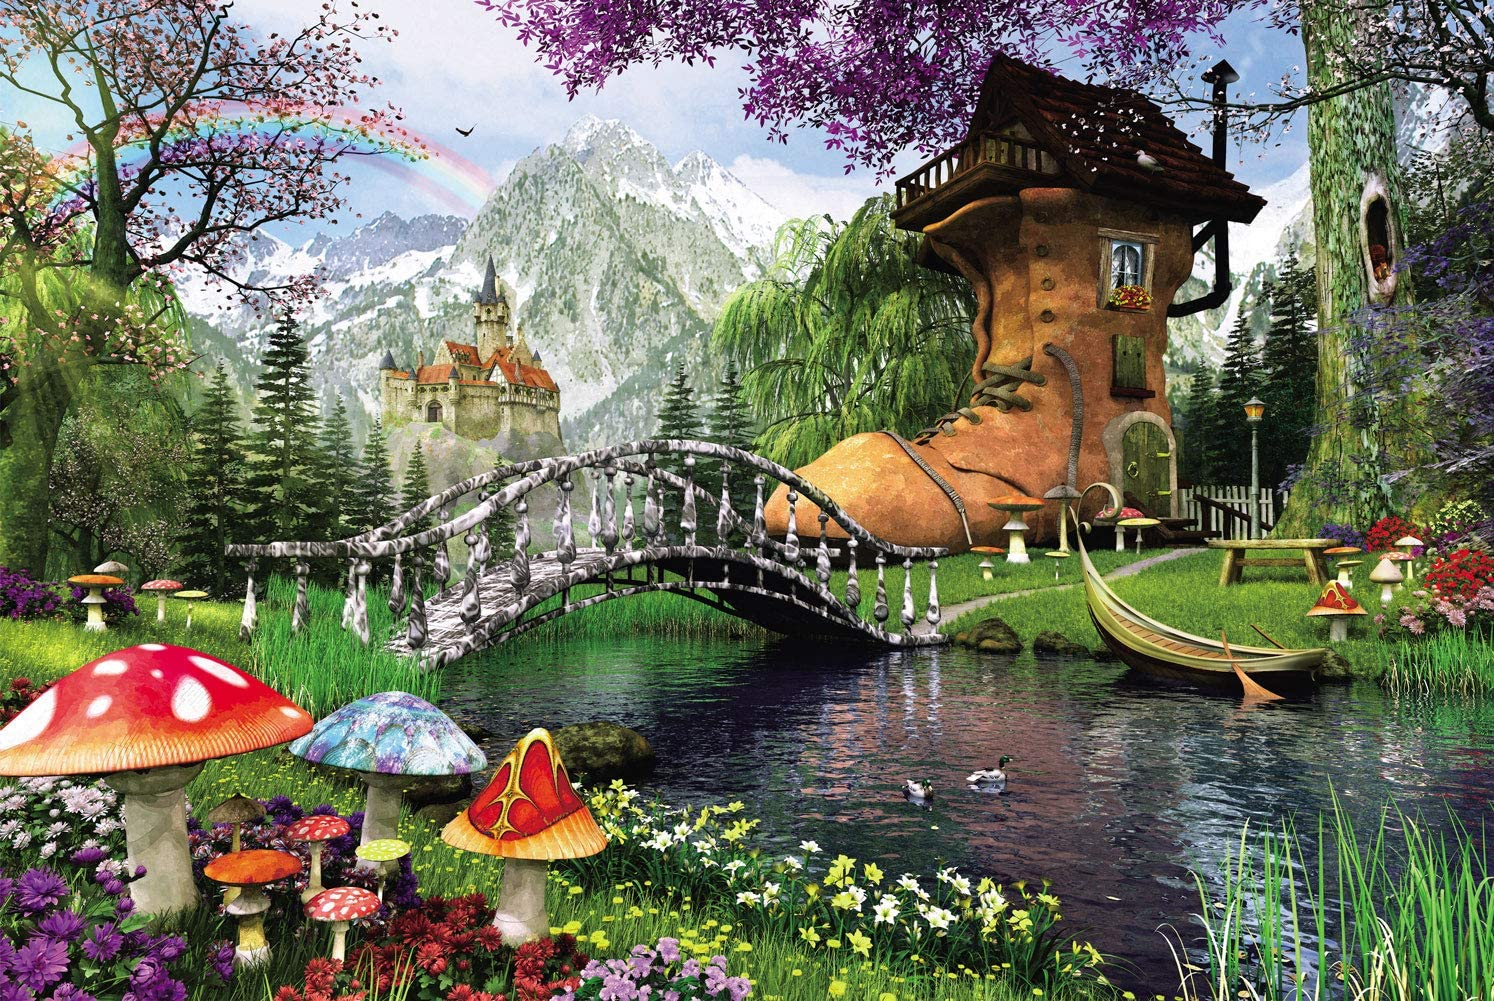 Agirlgle Jigsaw Puzzles 1000 Pieces for Adults for Kids-Old Shoe House,Every Piece is Made of Basswood,Softclick Technology Means Pieces Fit Together Perfectly Wood Jigsaw Puzzles